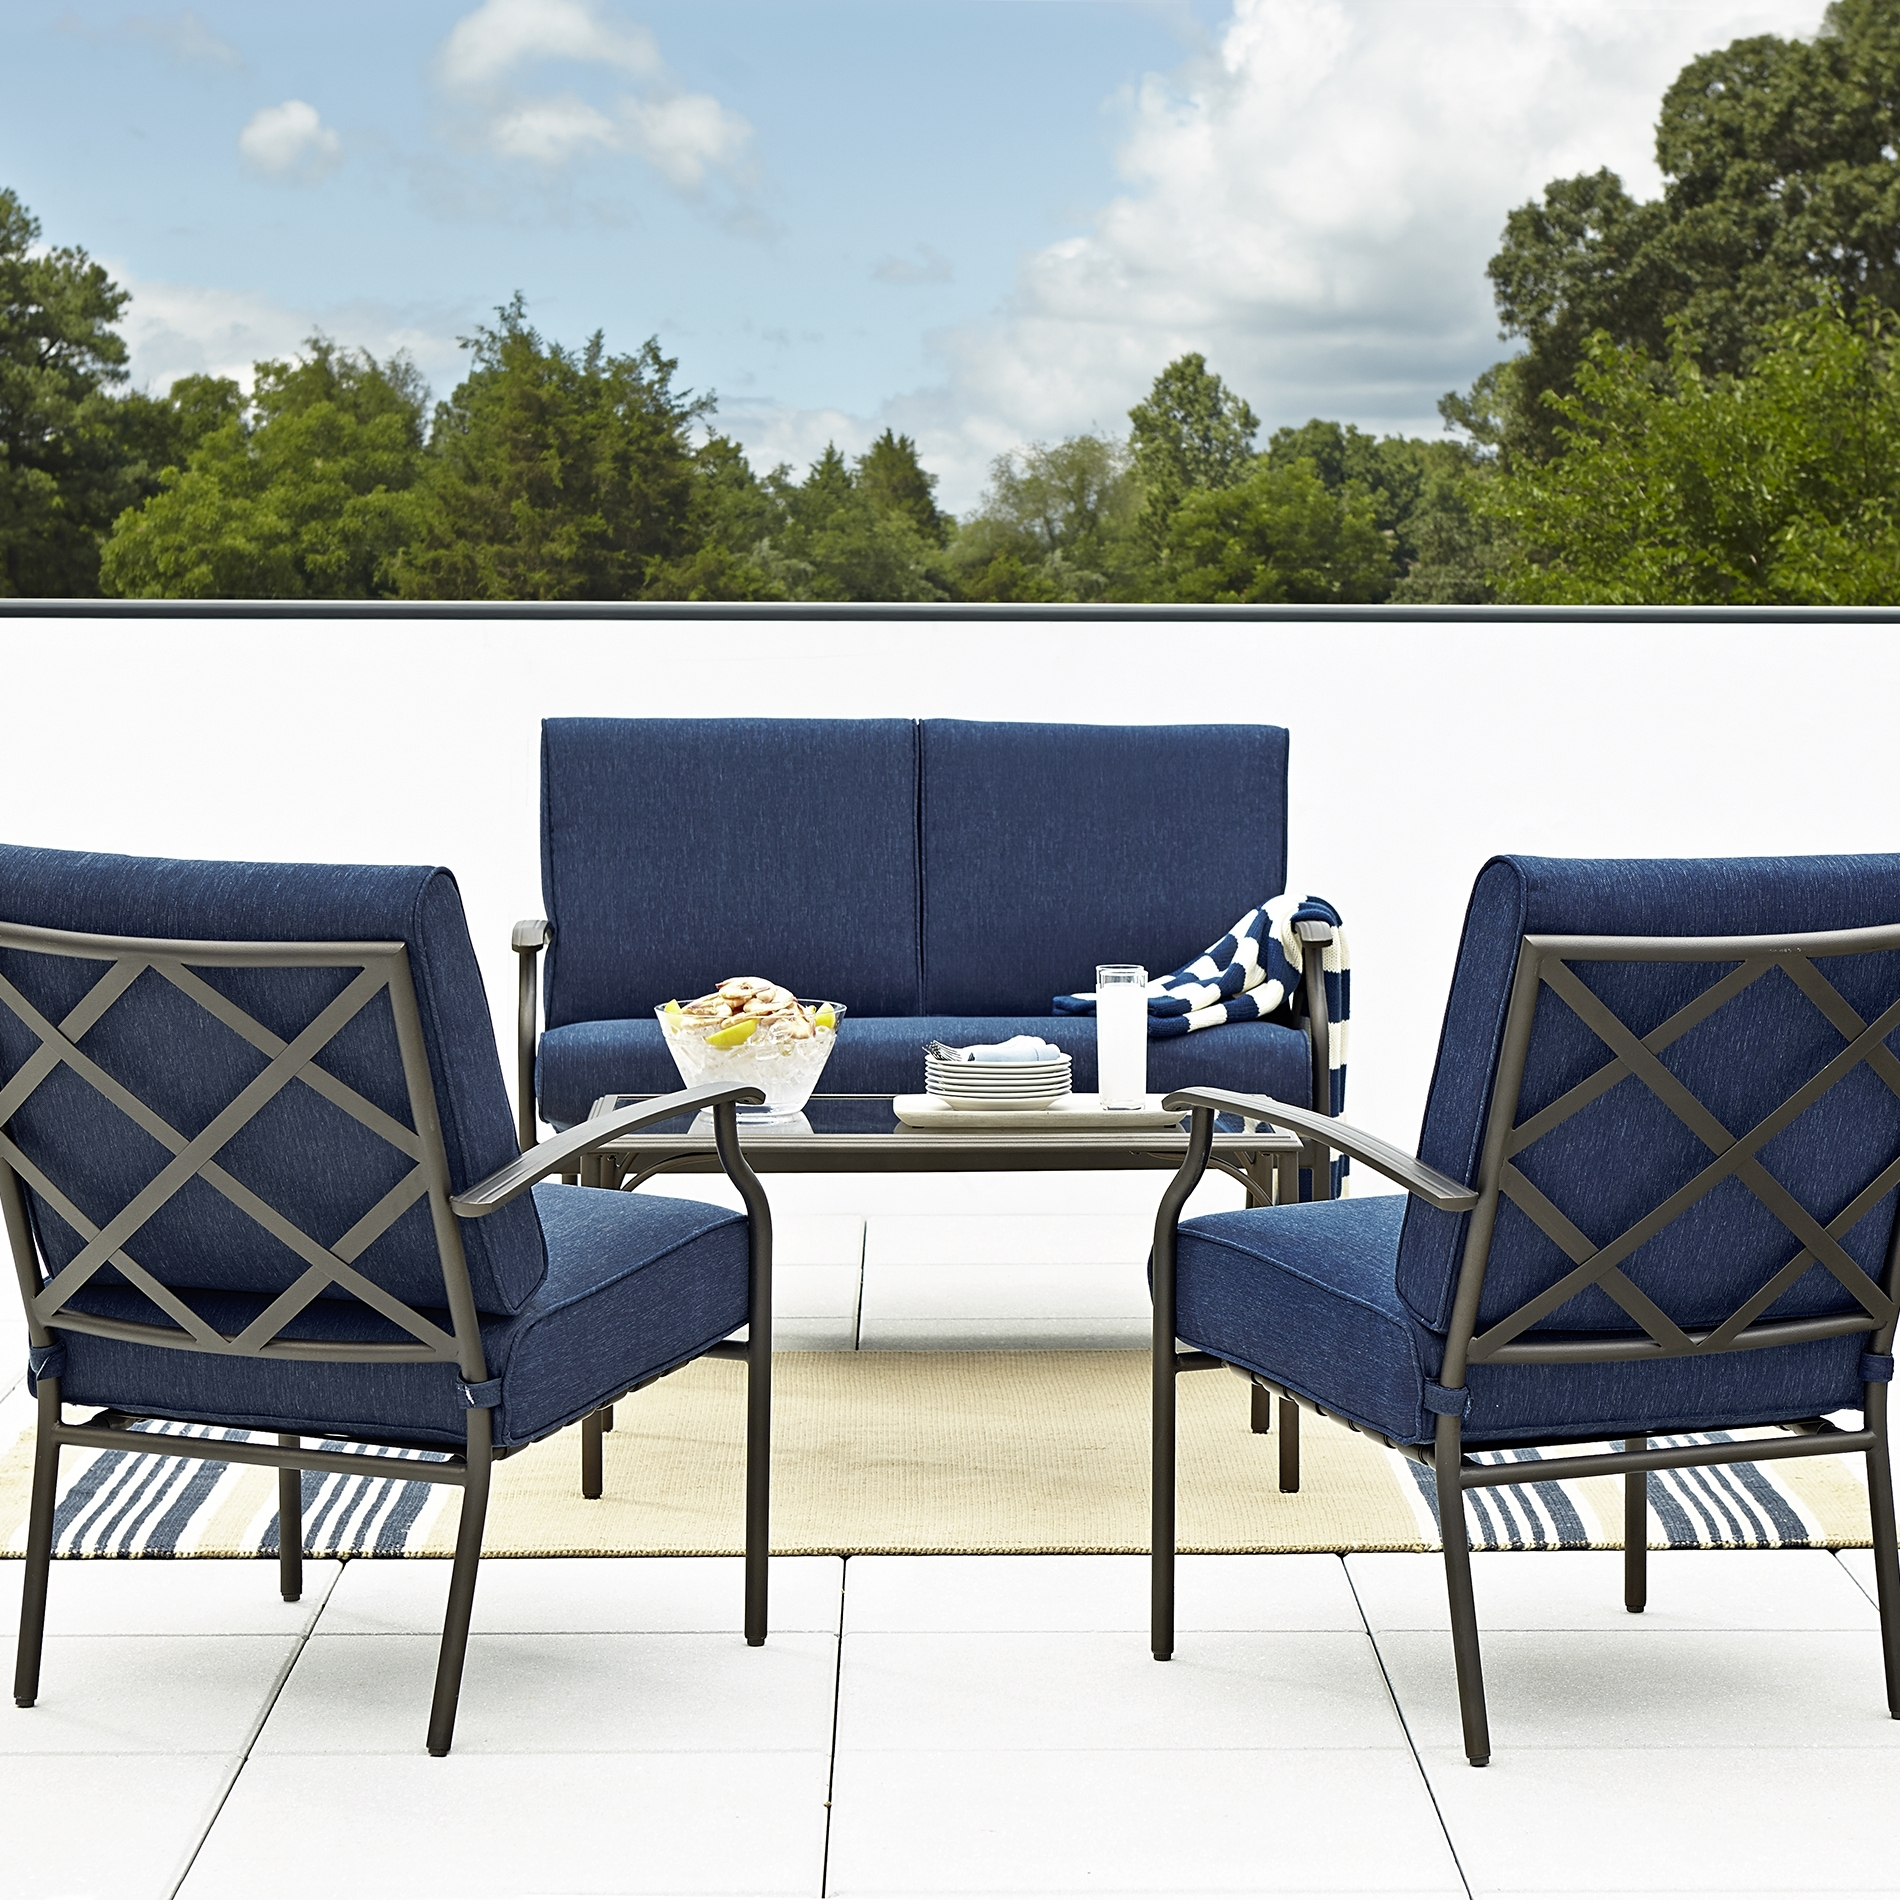 Sears Outdoor Furniture (View 19 of 20)